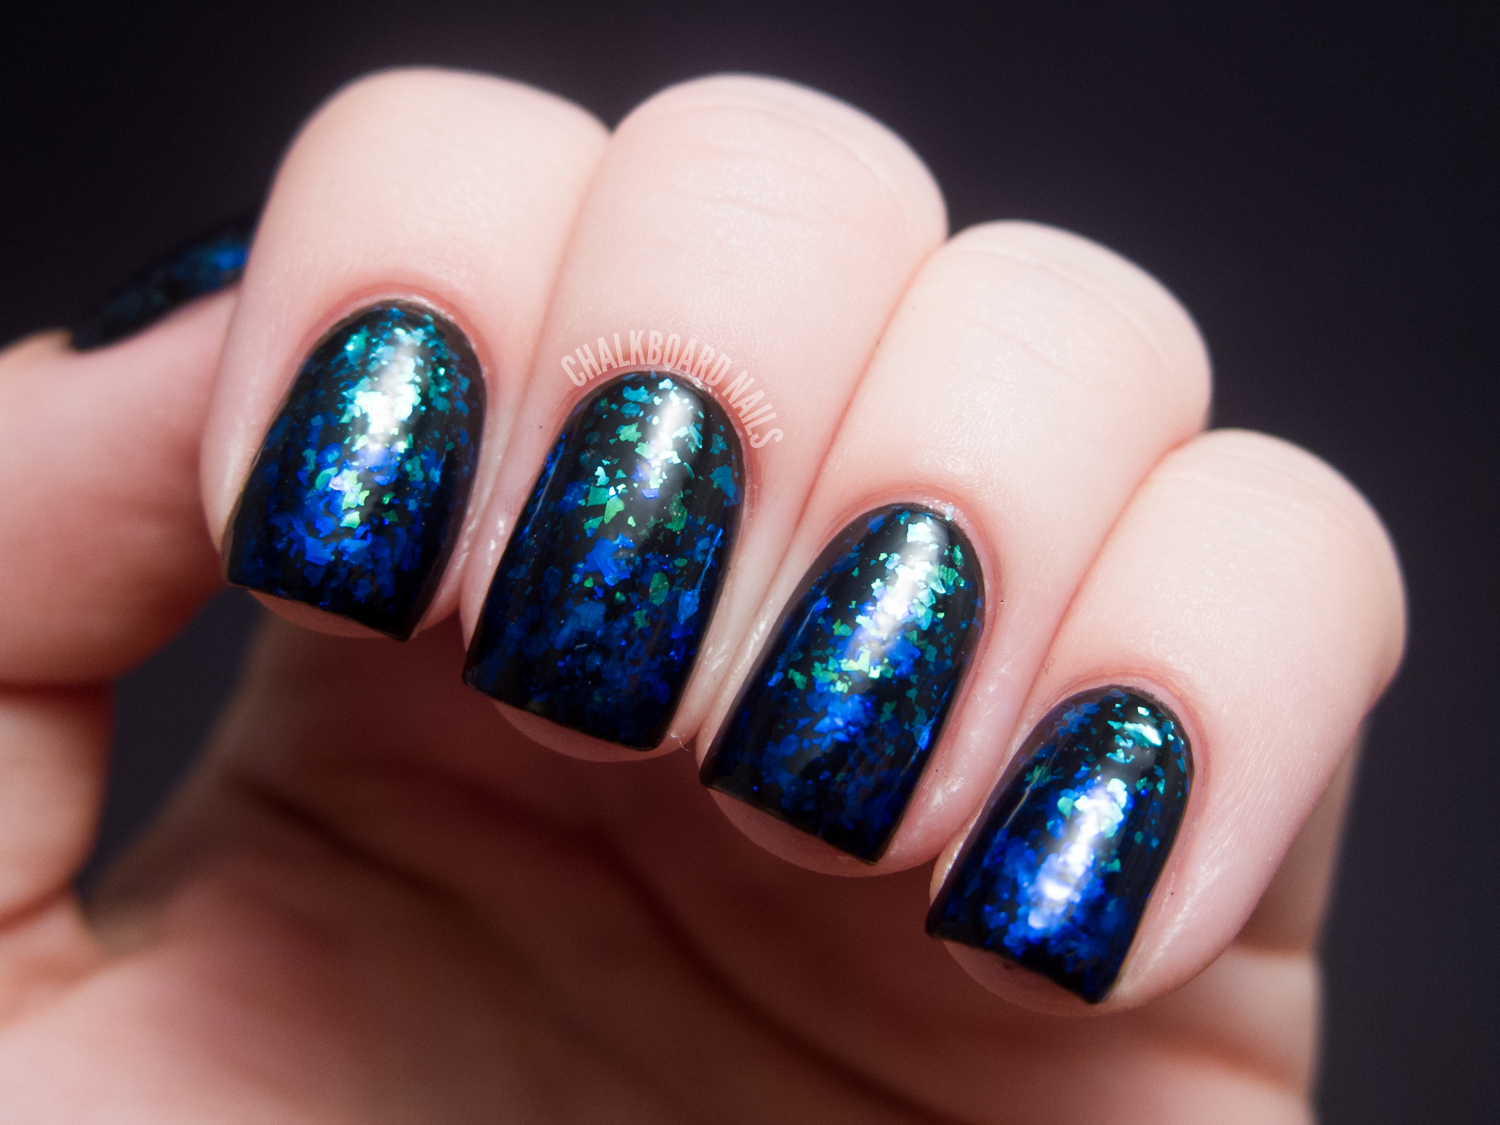 Blue to Green Flakie Gradient | Chalkboard Nails | Nail Art Blog